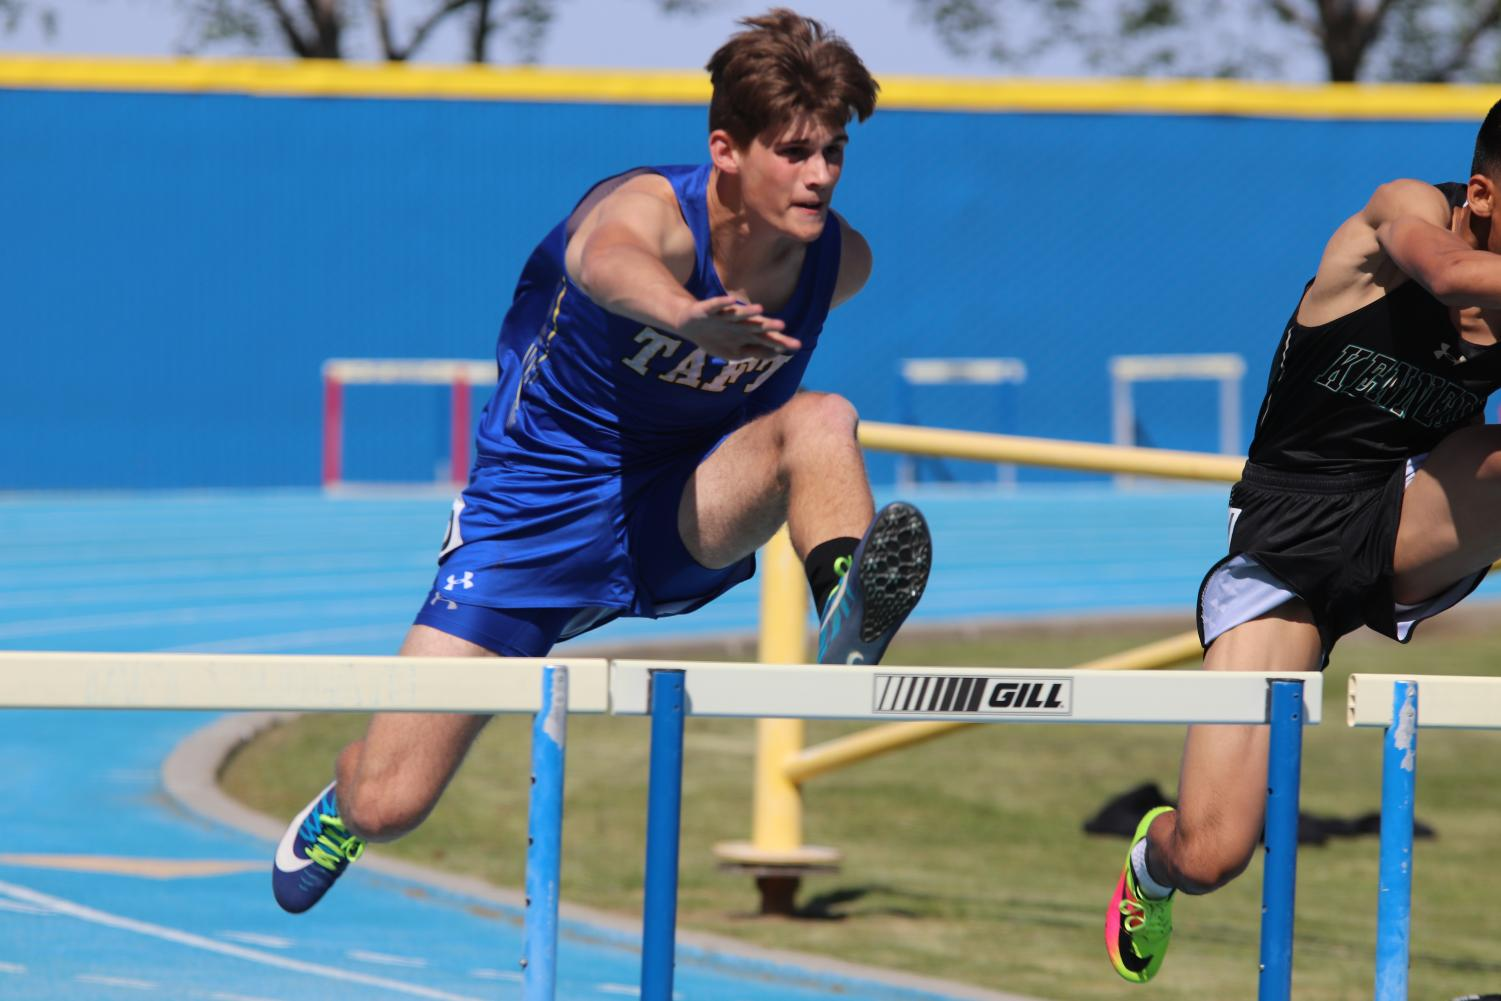 Jonathan Hopkins running through the first hurdle in his win in this league meet.